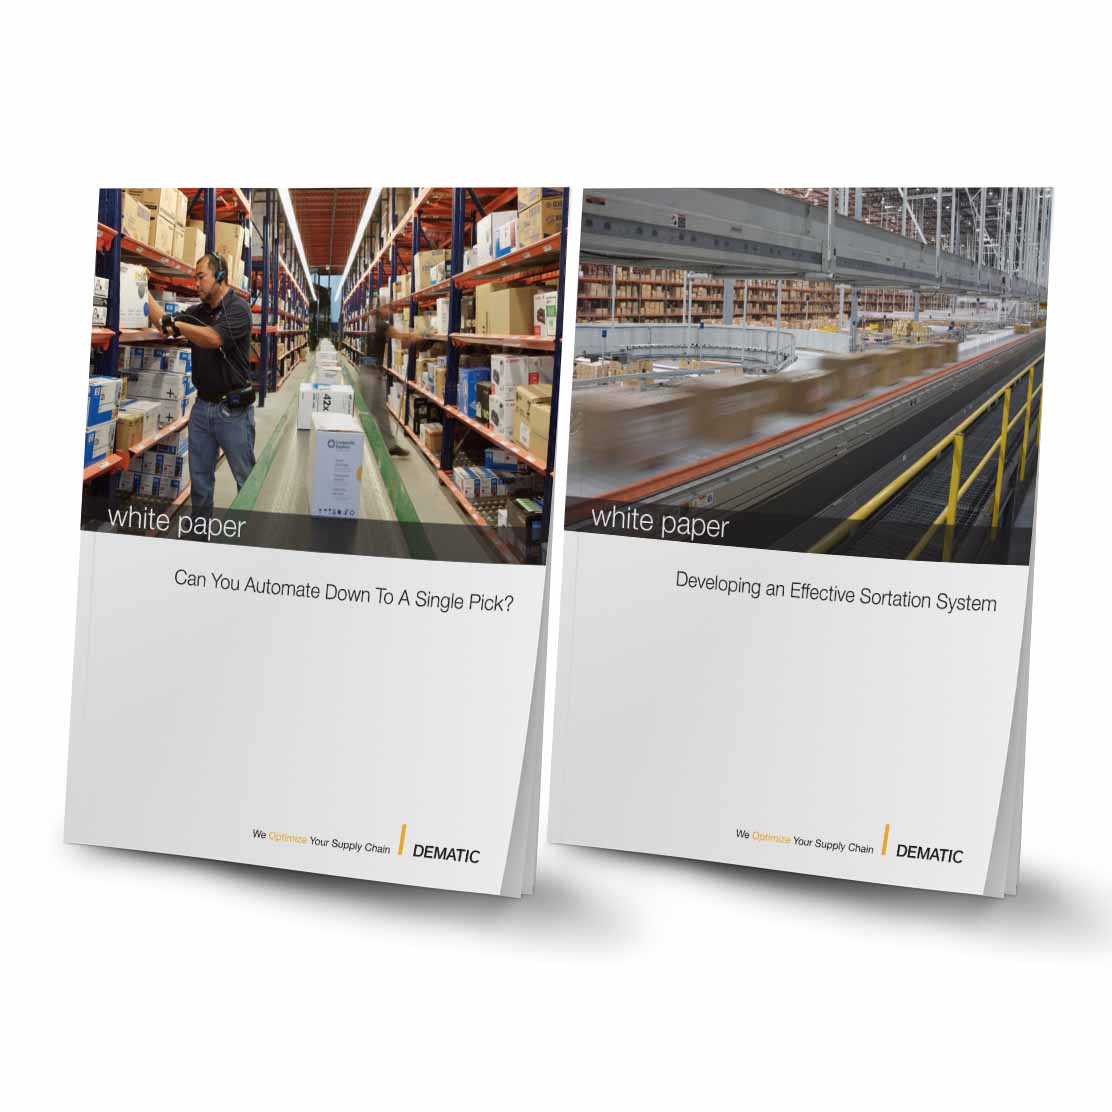 Dematic Whitepapers - About Dematic - Shoppa's Material Handling